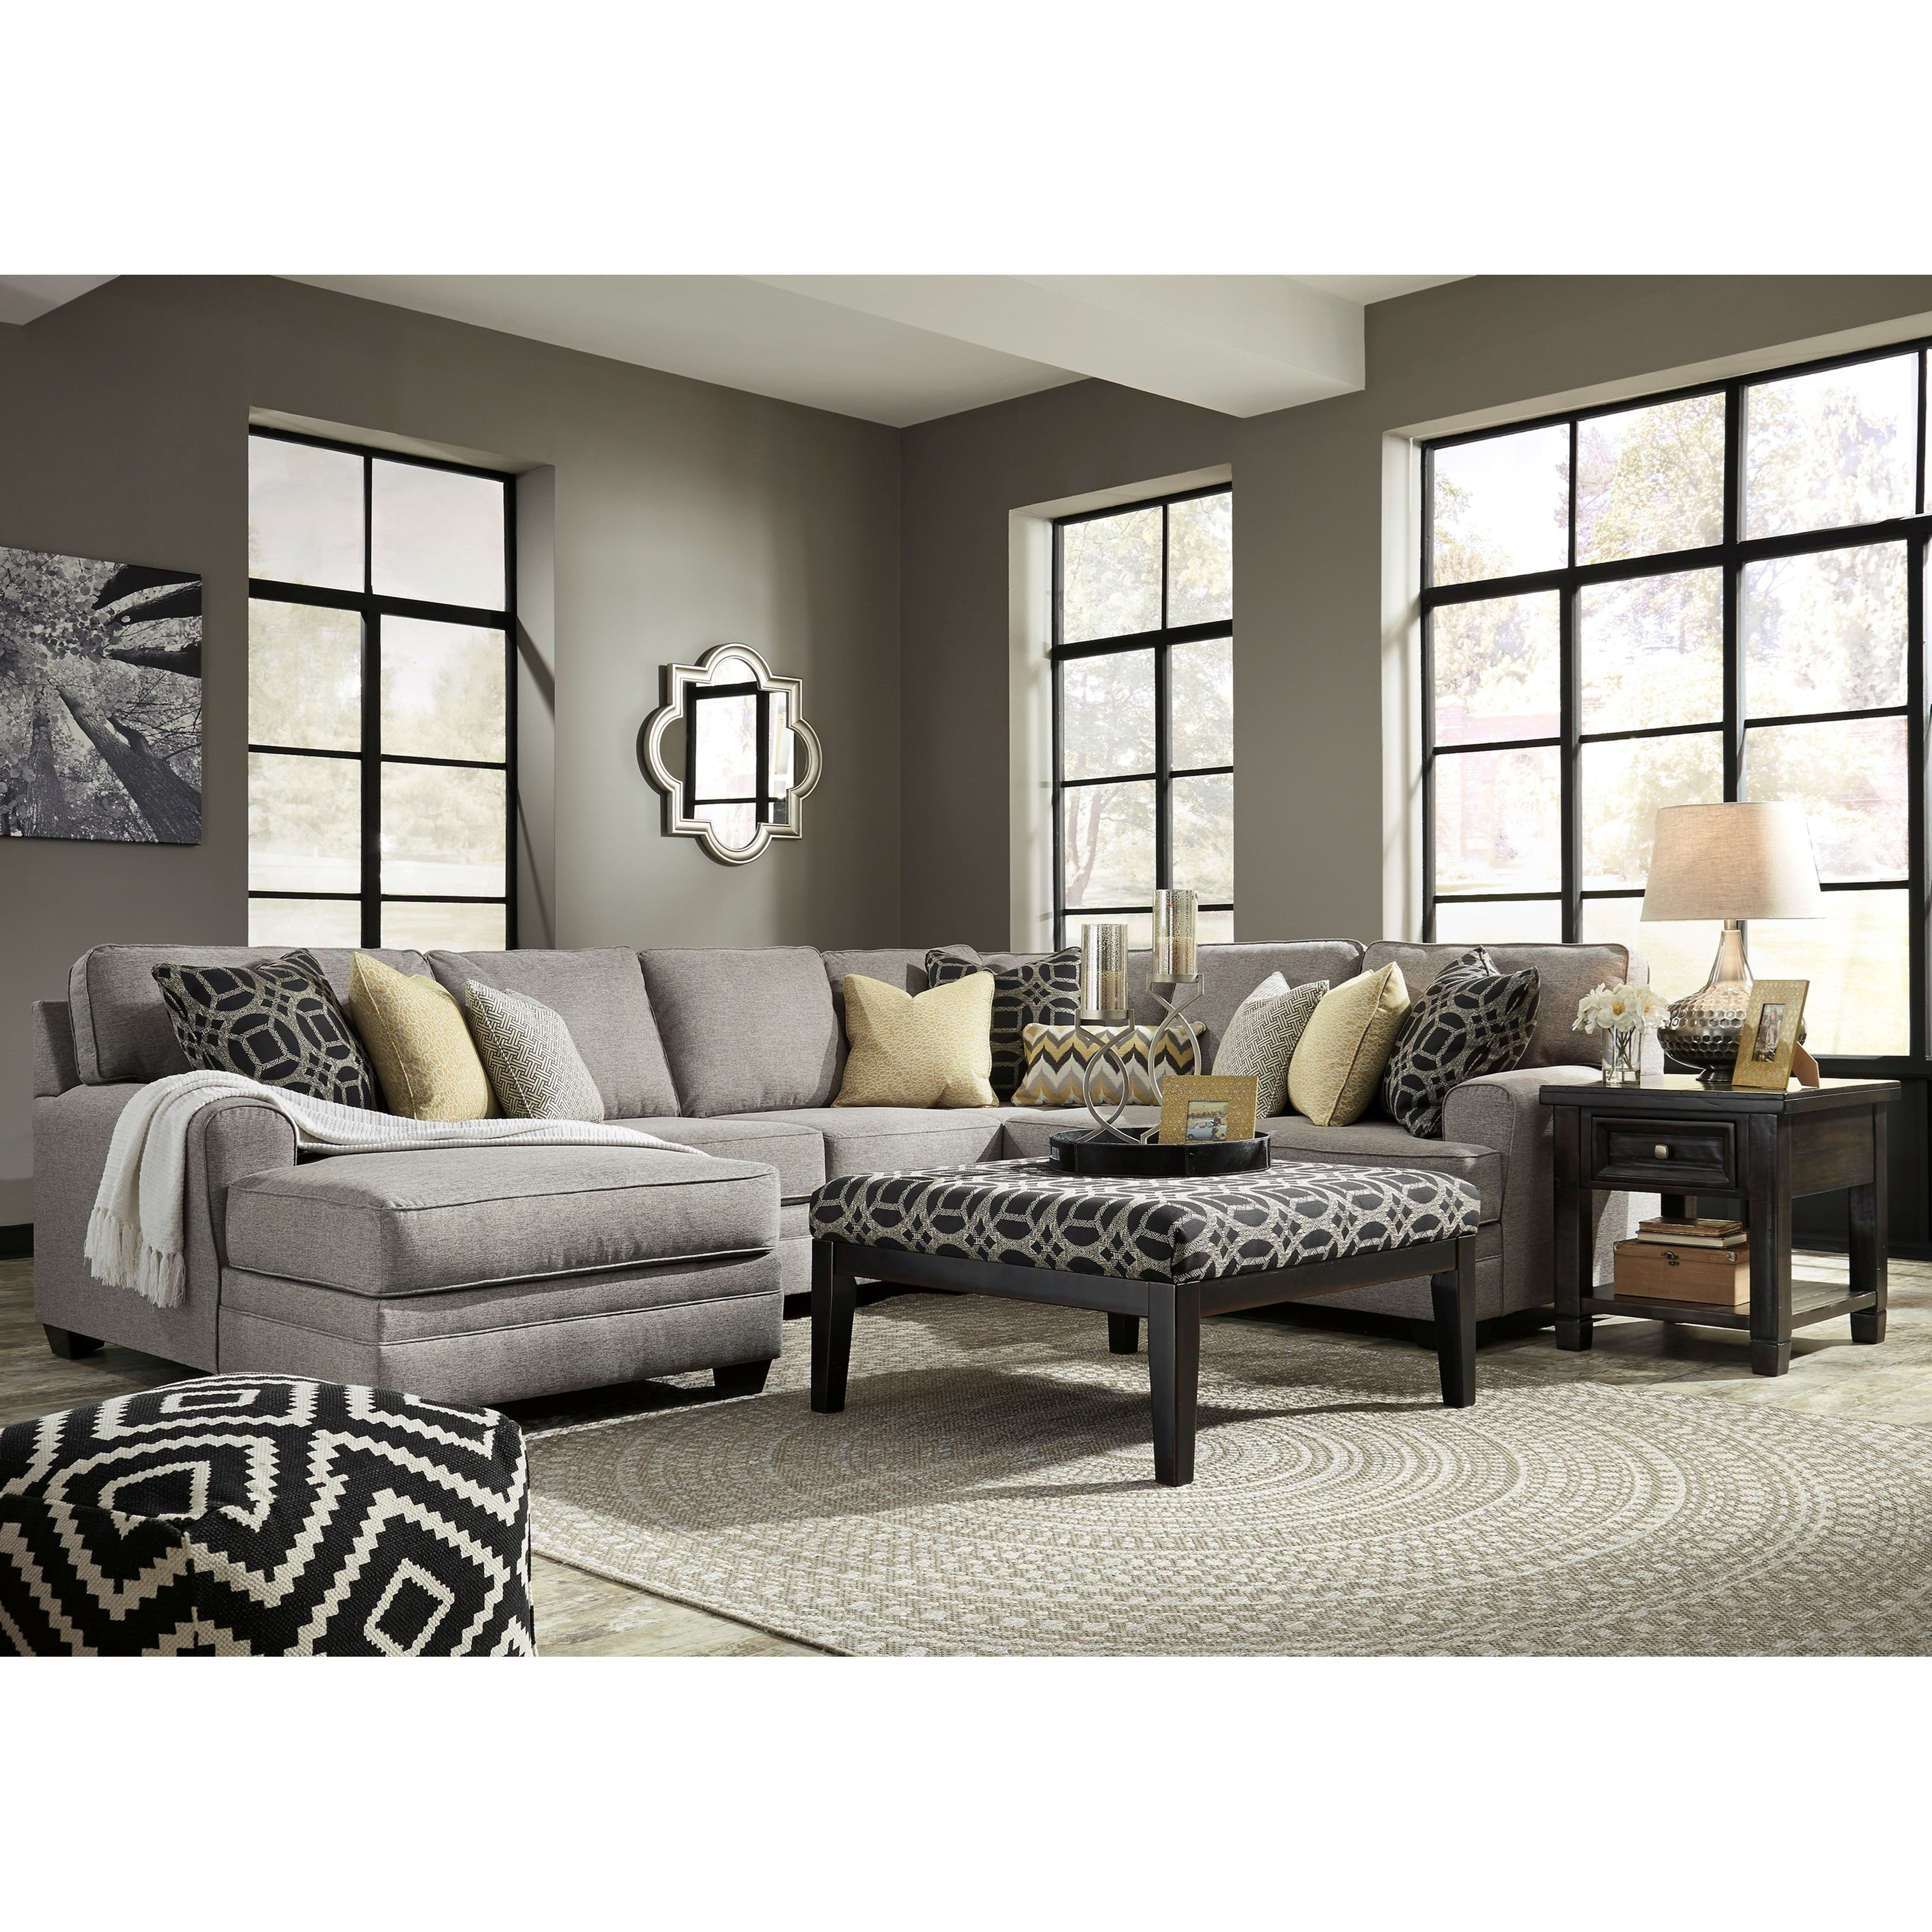 Ashley/Benchcraft Cresson Stationary Living Room Group - Item Number: 54907 Living Room Group 1